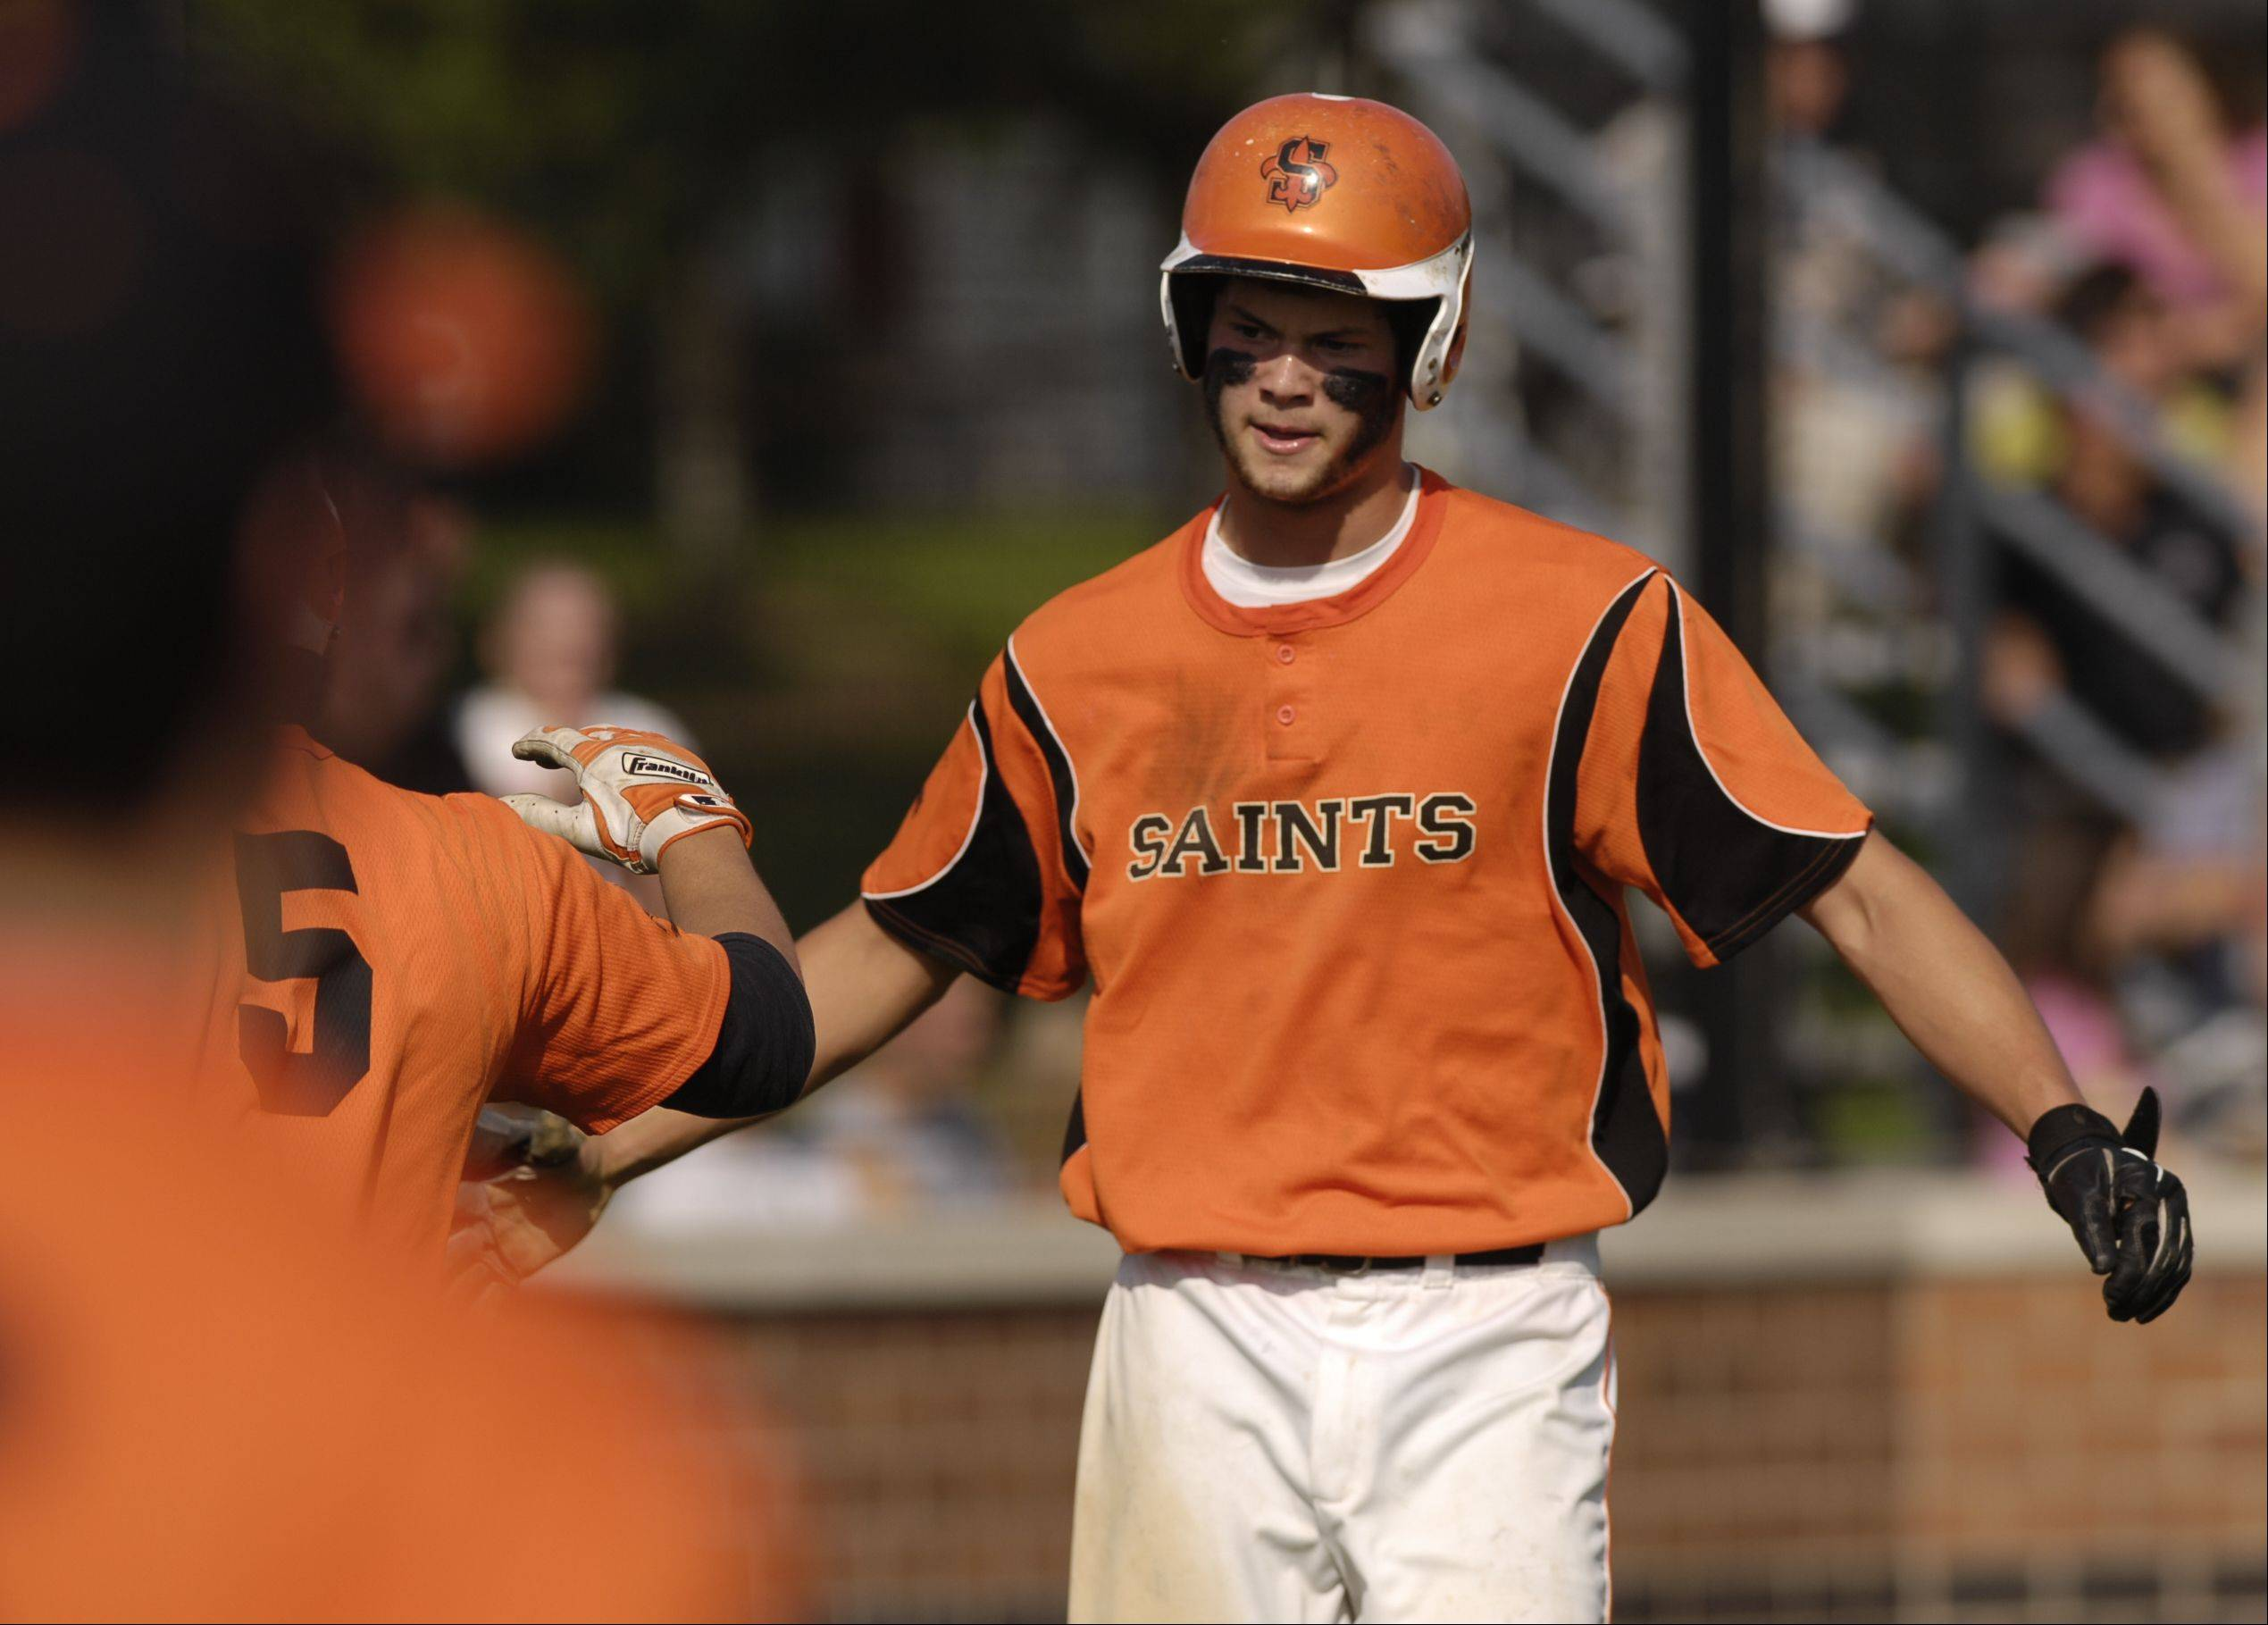 Brannon Barry of St. Charles East scores his teams 6th and finial run during the Saints 6-0 win over Lake Park during the baseball sectional semifinals, Monday in St. Charles.